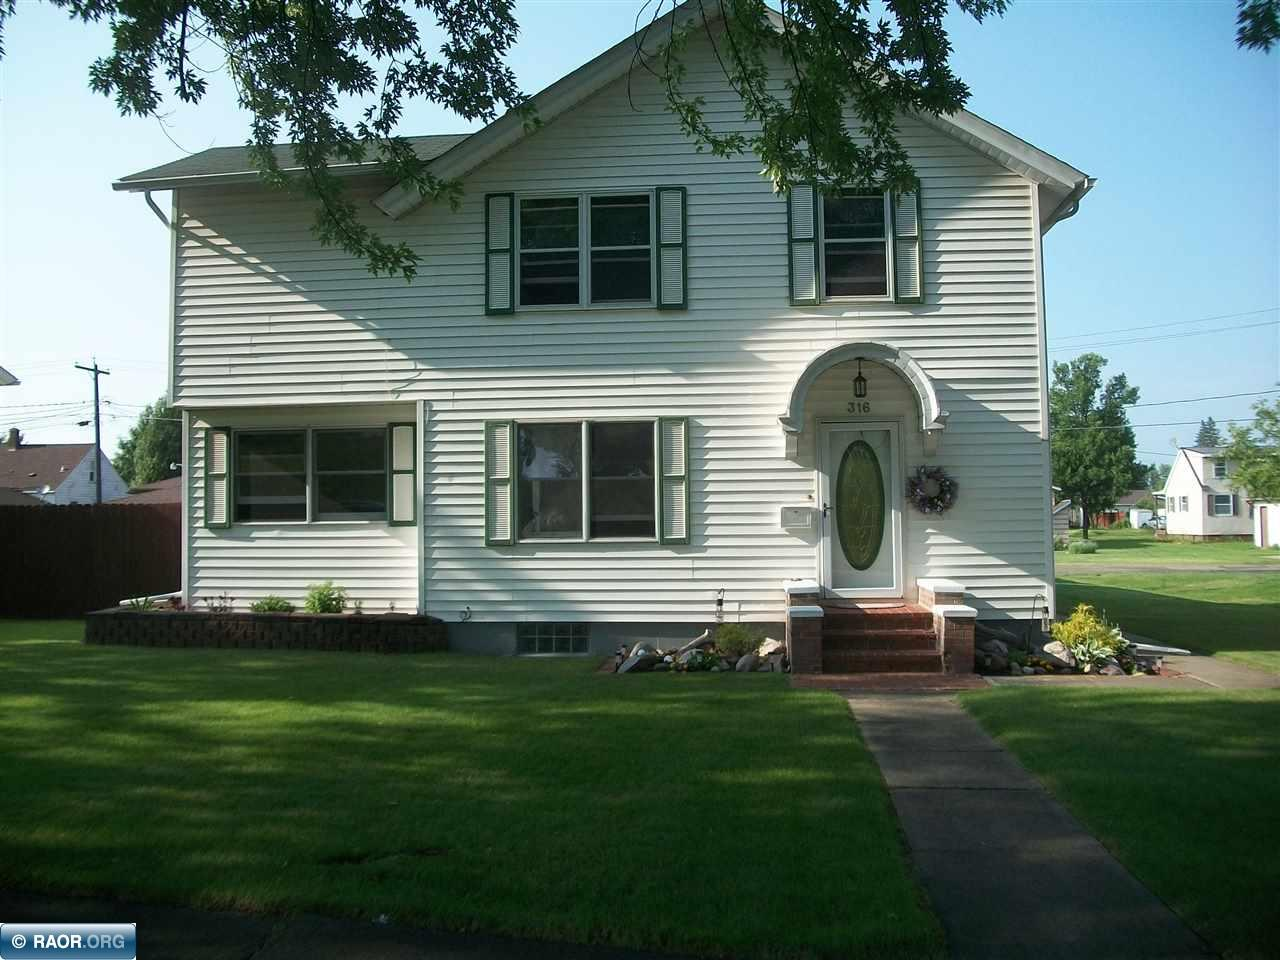 316 NW 7TH ST, CHISHOLM, MN 55719